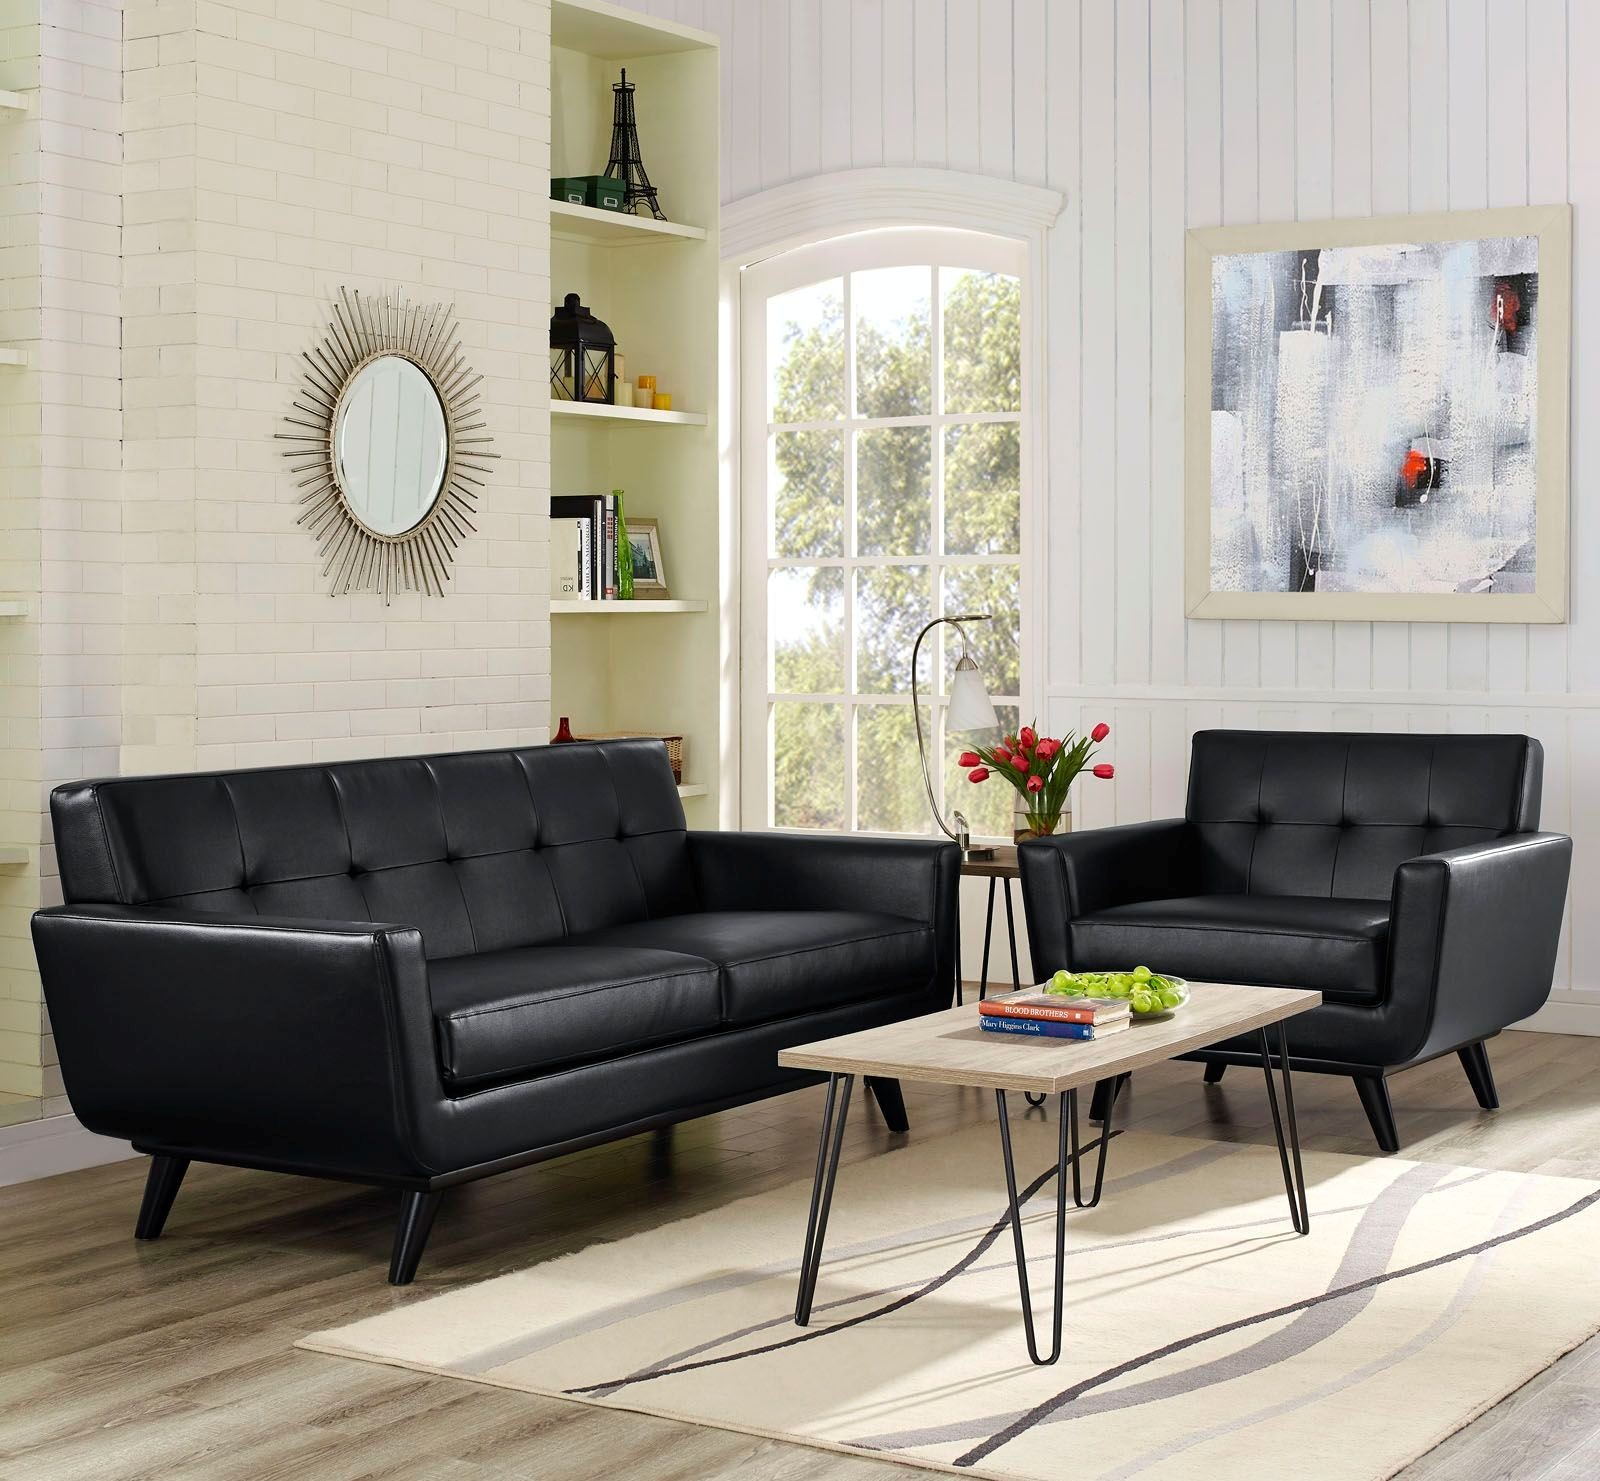 Engage Black 2 Piece Leather Living Room Set, EEI-1765-BLK